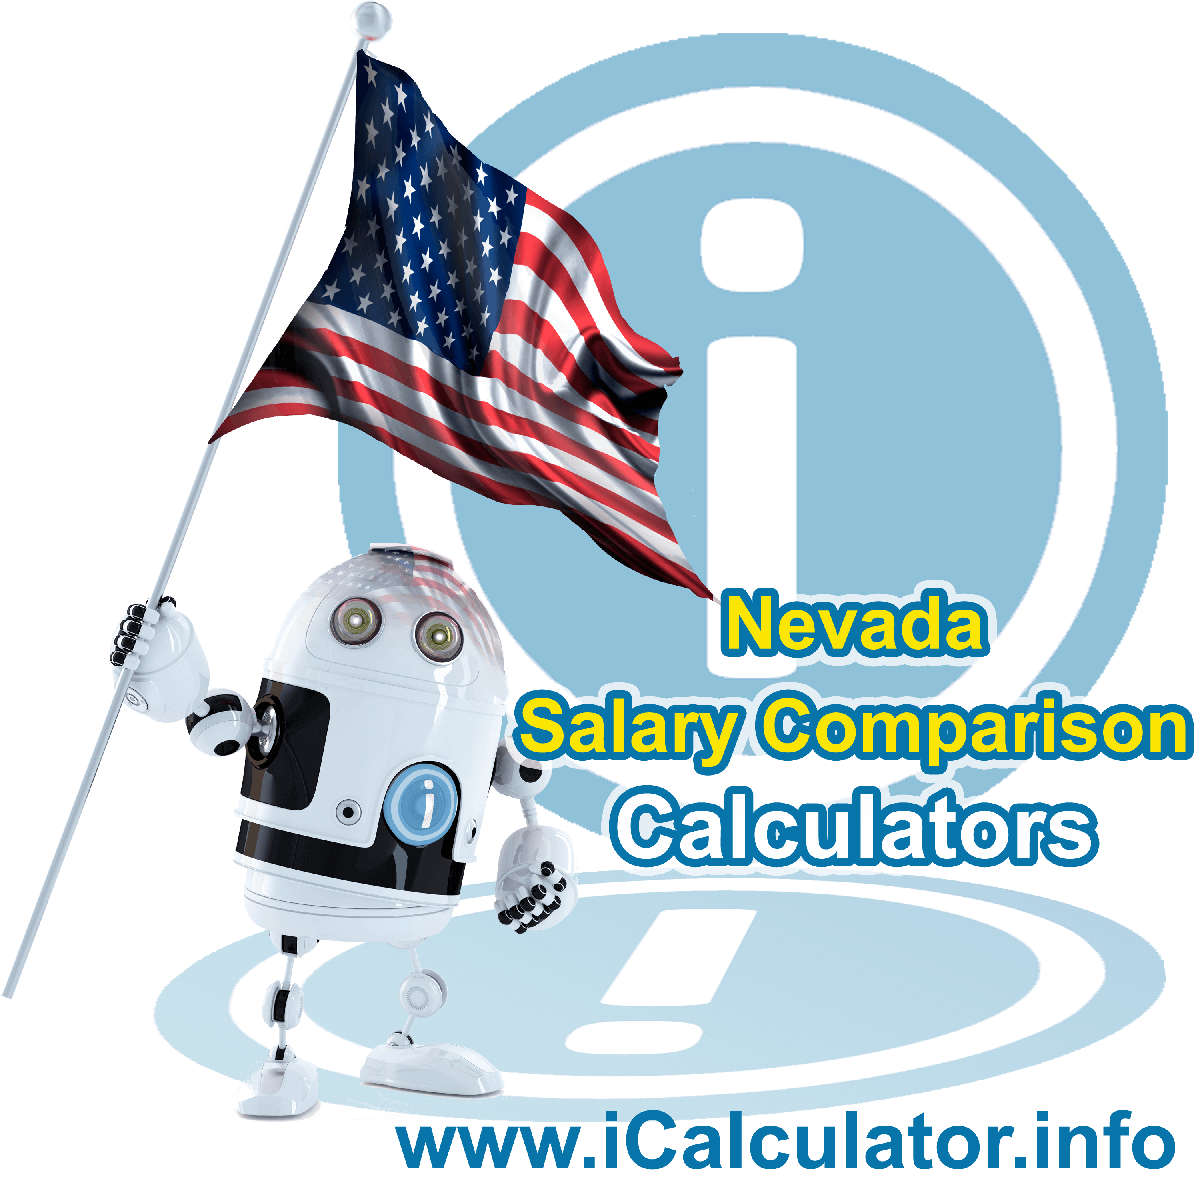 Nevada Salary Comparison Calculator 2021 | iCalculator™ | The Nevada Salary Comparison Calculator allows you to quickly calculate and compare upto 6 salaries in Nevada or between other states for the 2021 tax year and historical tax years. Its an excellent tool for jobseekers, pay raise comparison and comparison of salaries between different US States